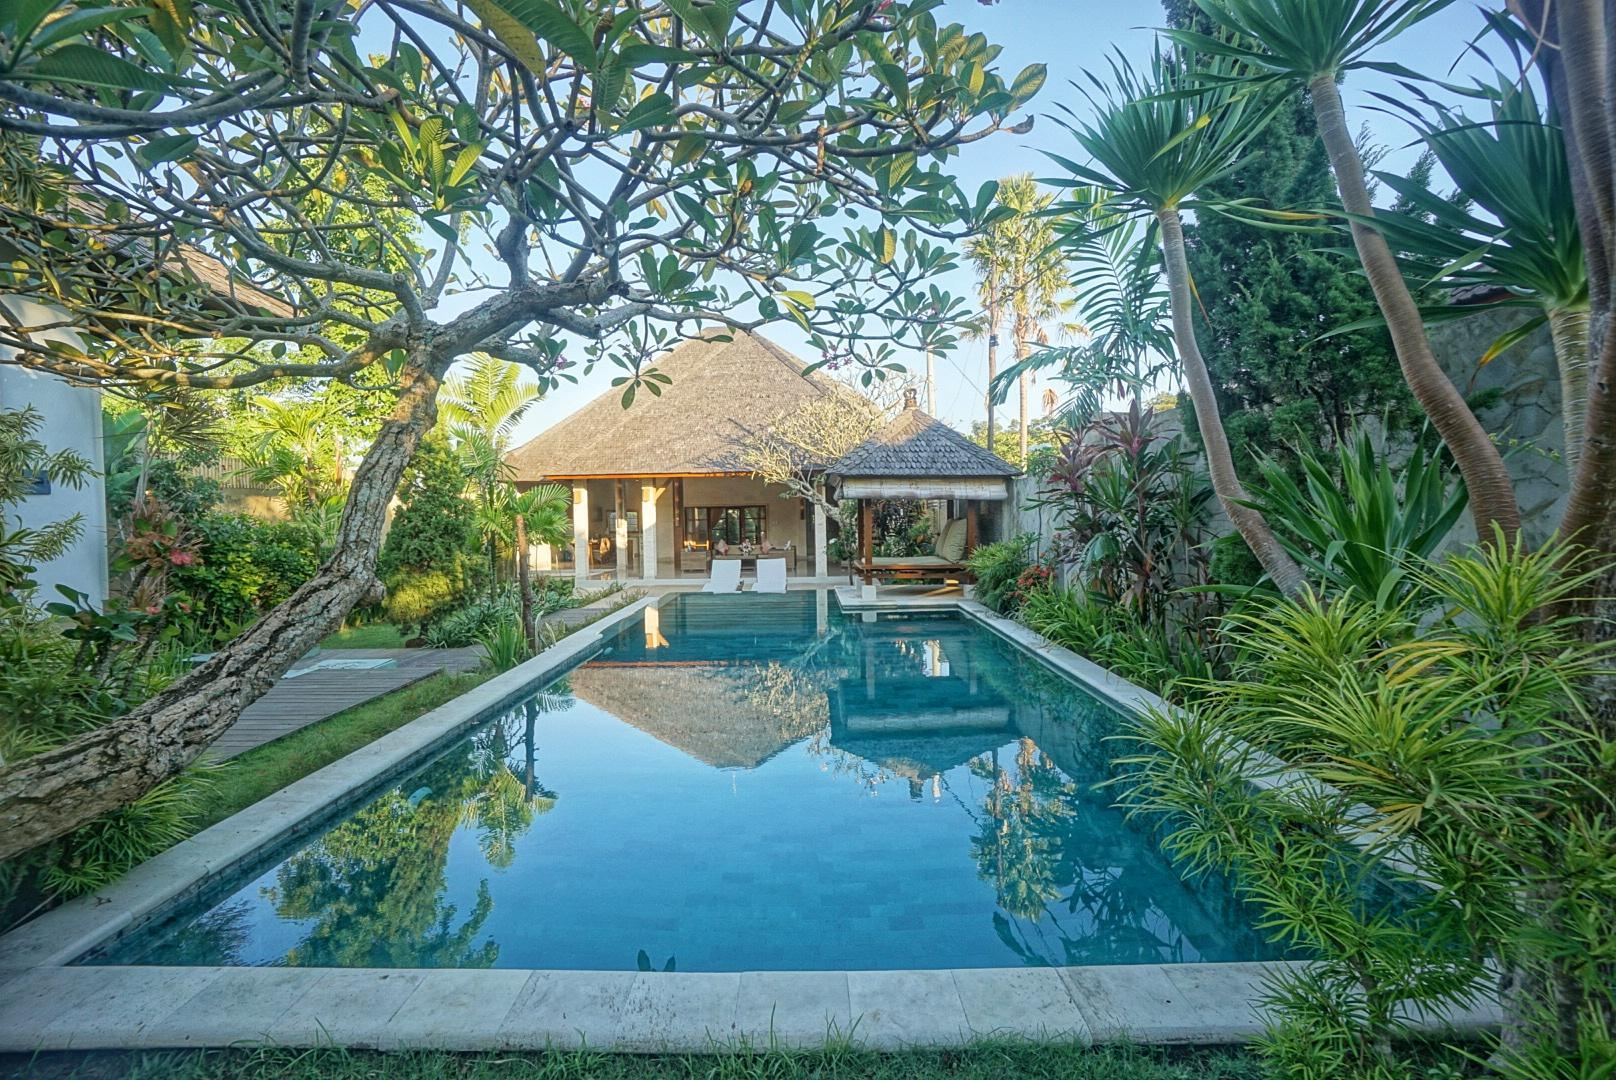 NEW! 3BR Huge Villa with huge pool - PROMO RATE!!! Reviews